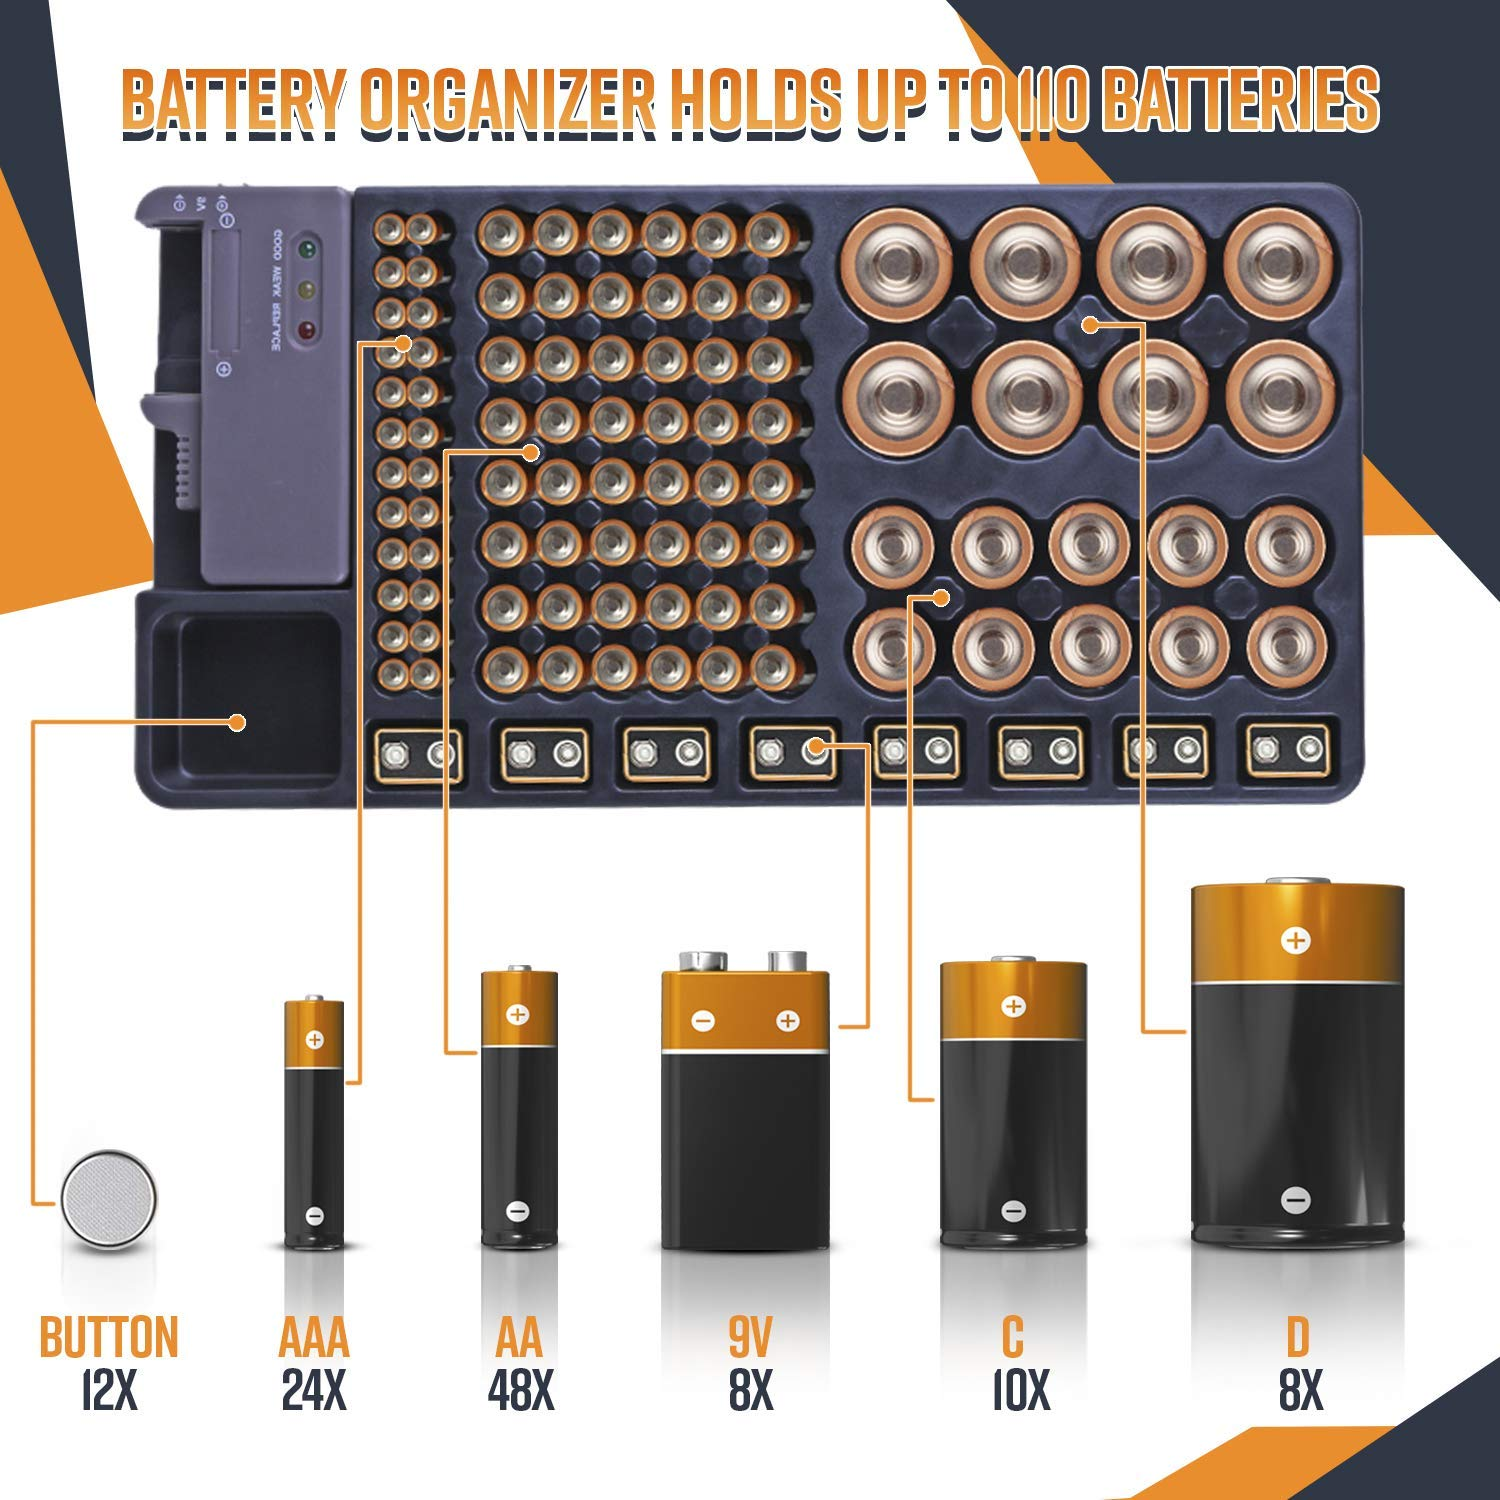 FFYY-Battery Storage Organizer Holder With Tester - Battery Caddy Rack Case Box Holders Including Battery Checker For AAA AA C